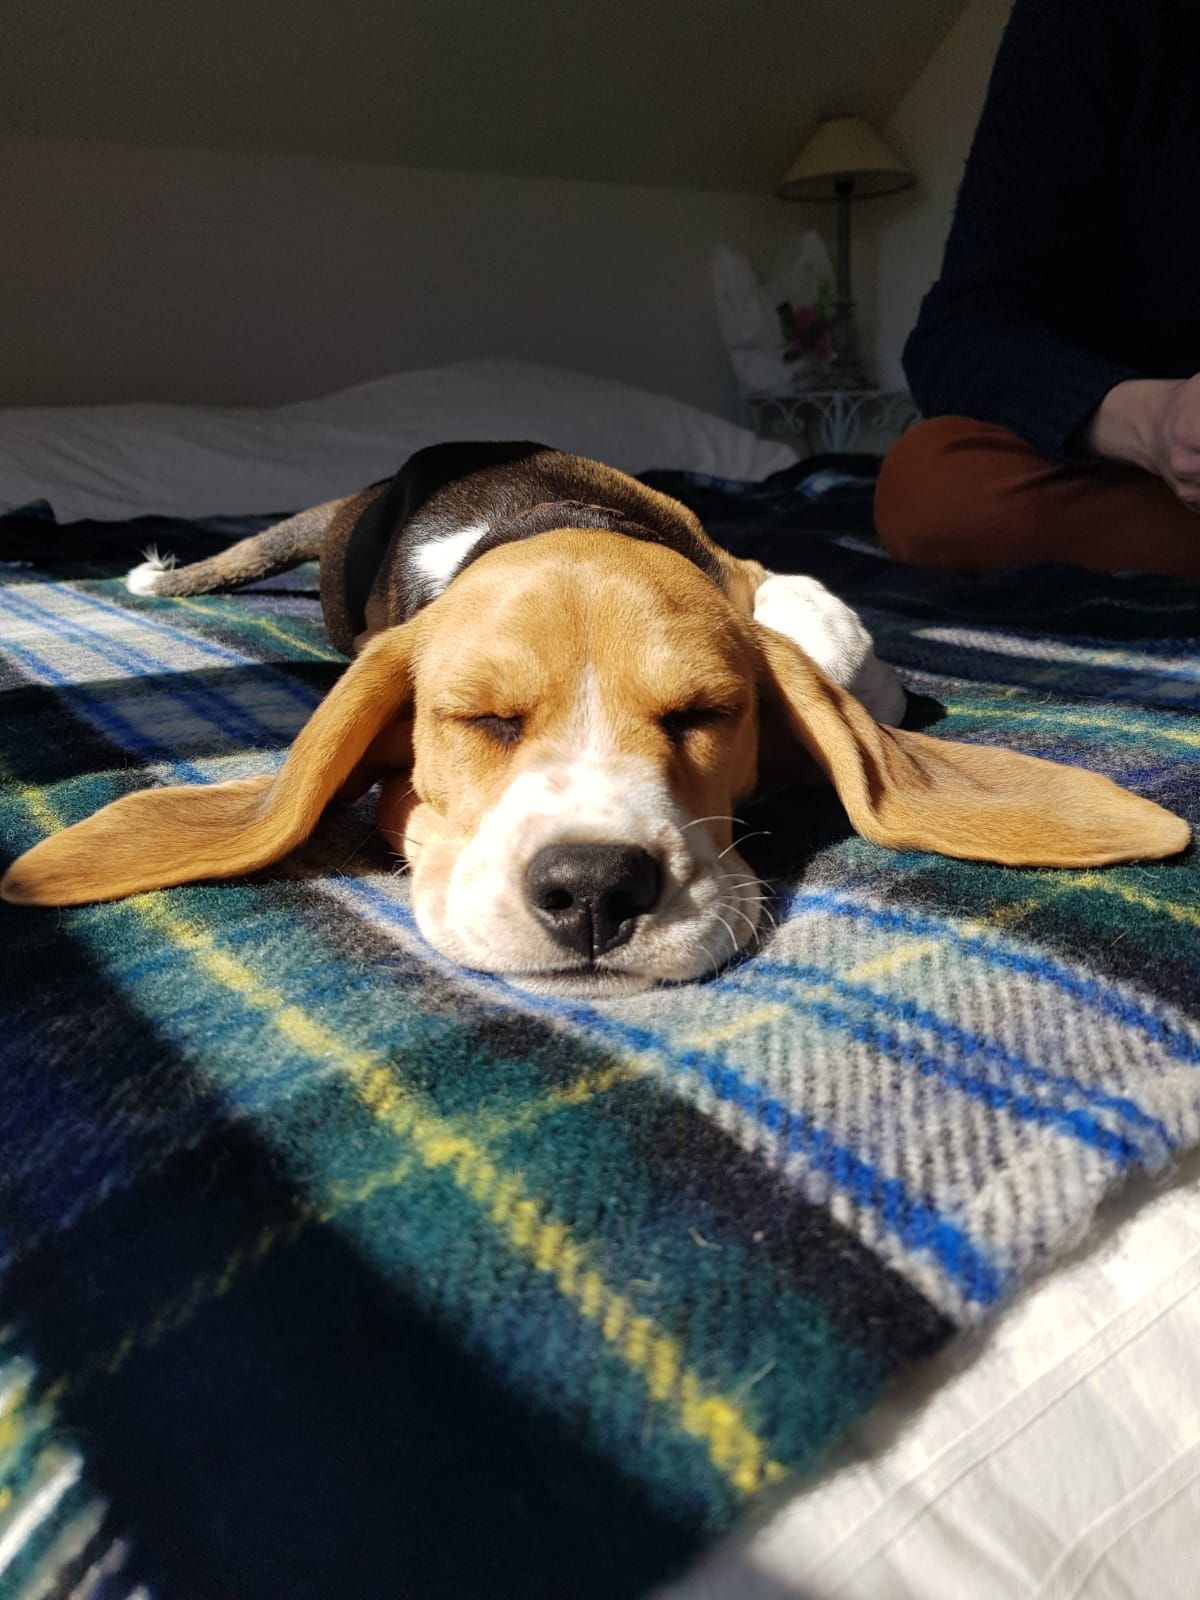 Baby pongo sleeping on bed the most adorable beagle pup ever